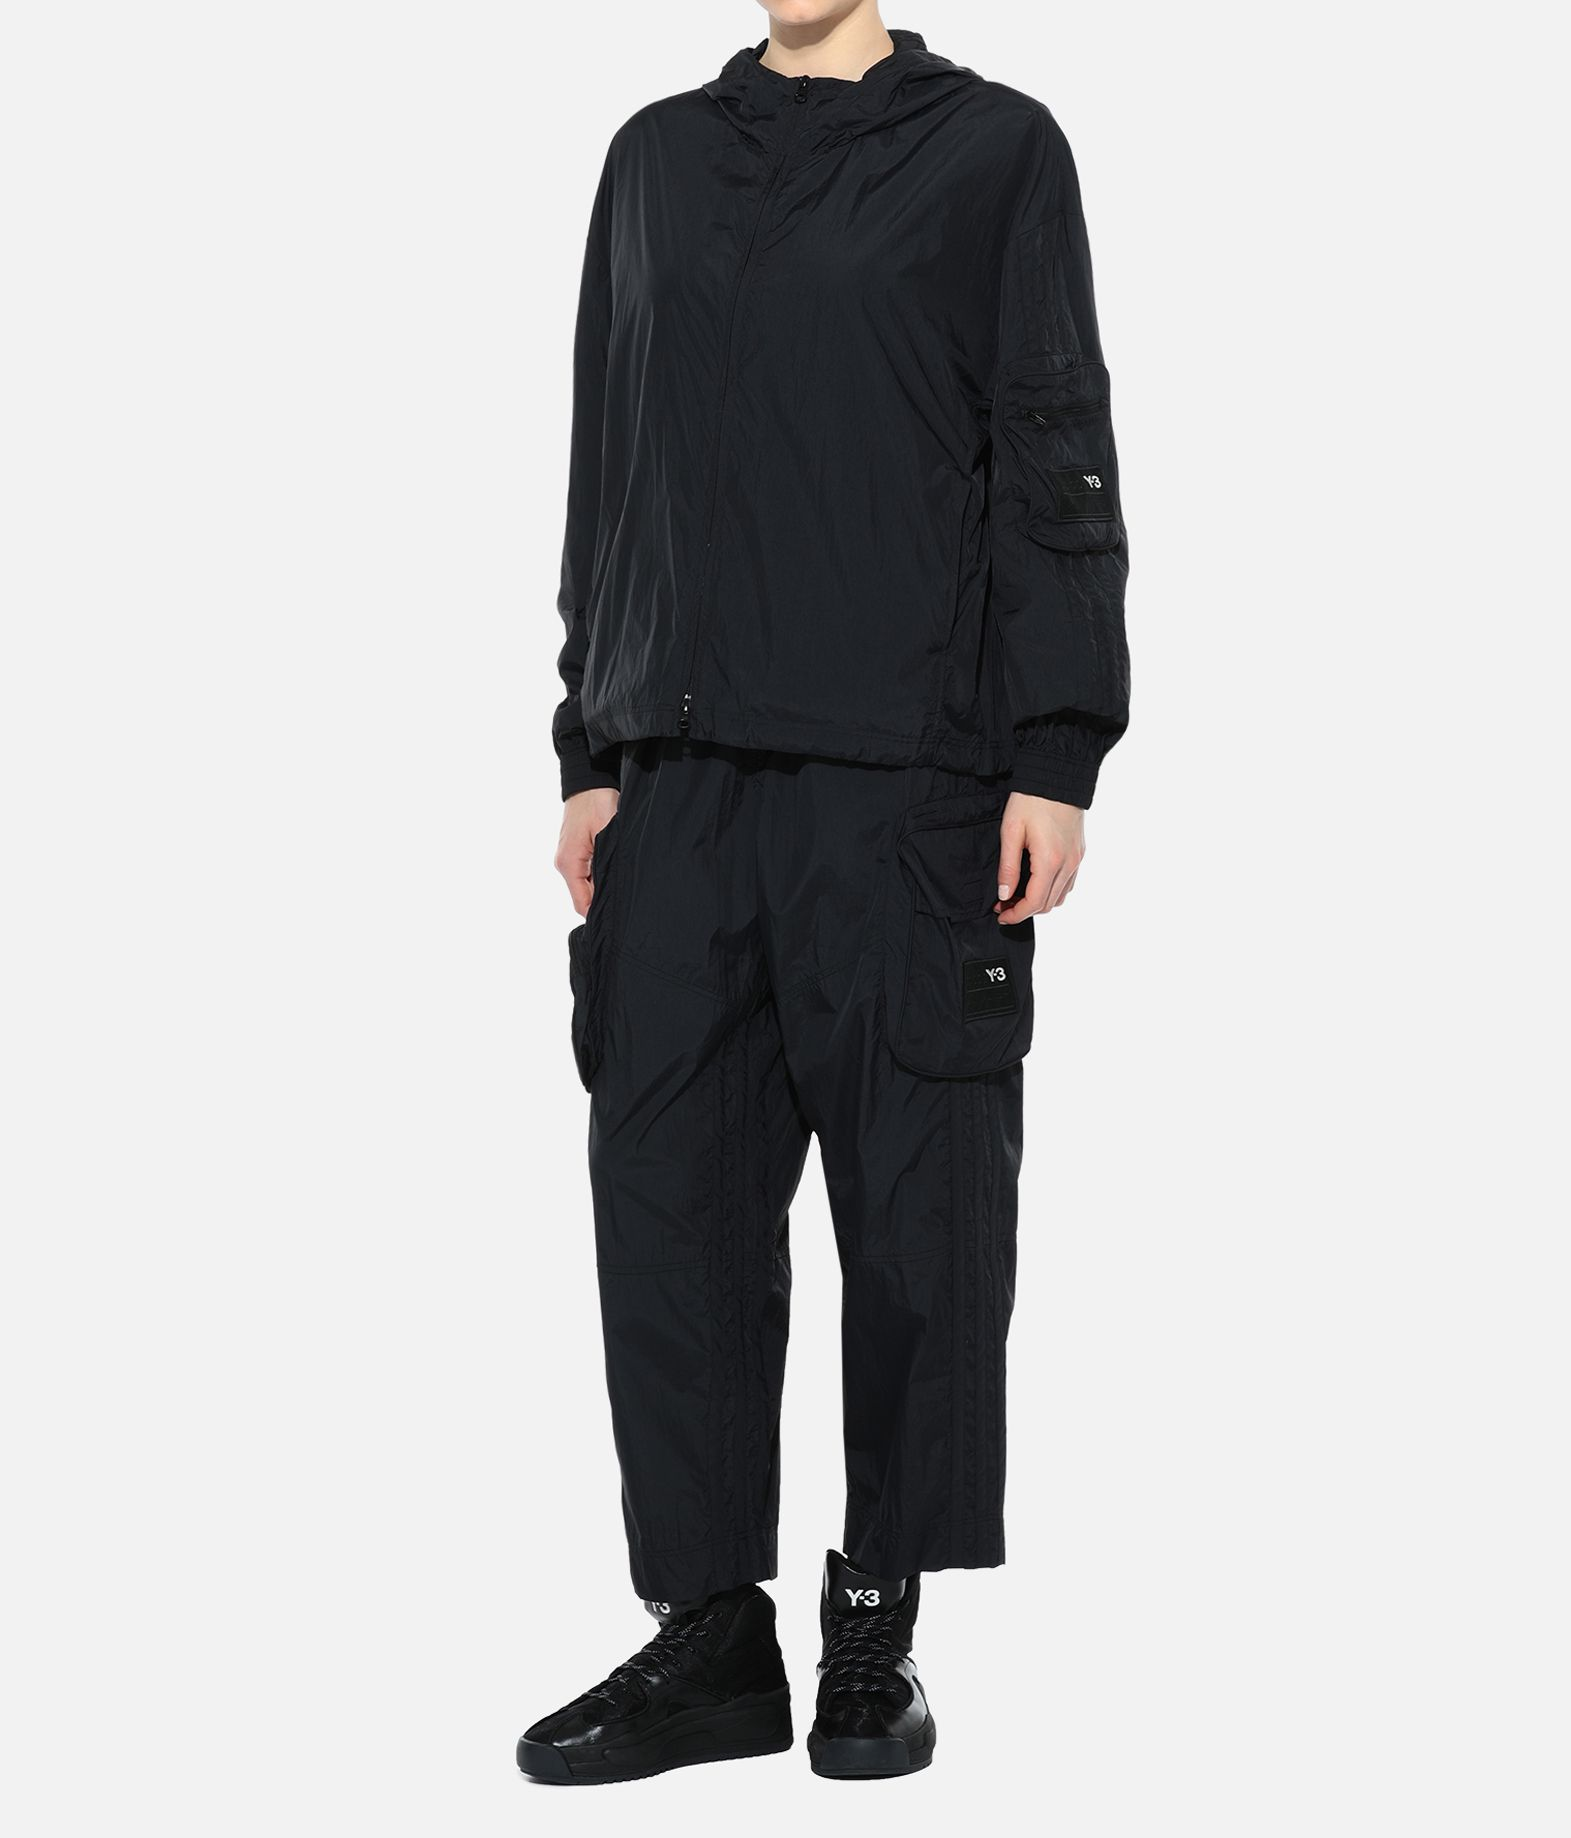 Y-3 Y-3 Shell Track Pants Track pant Woman a